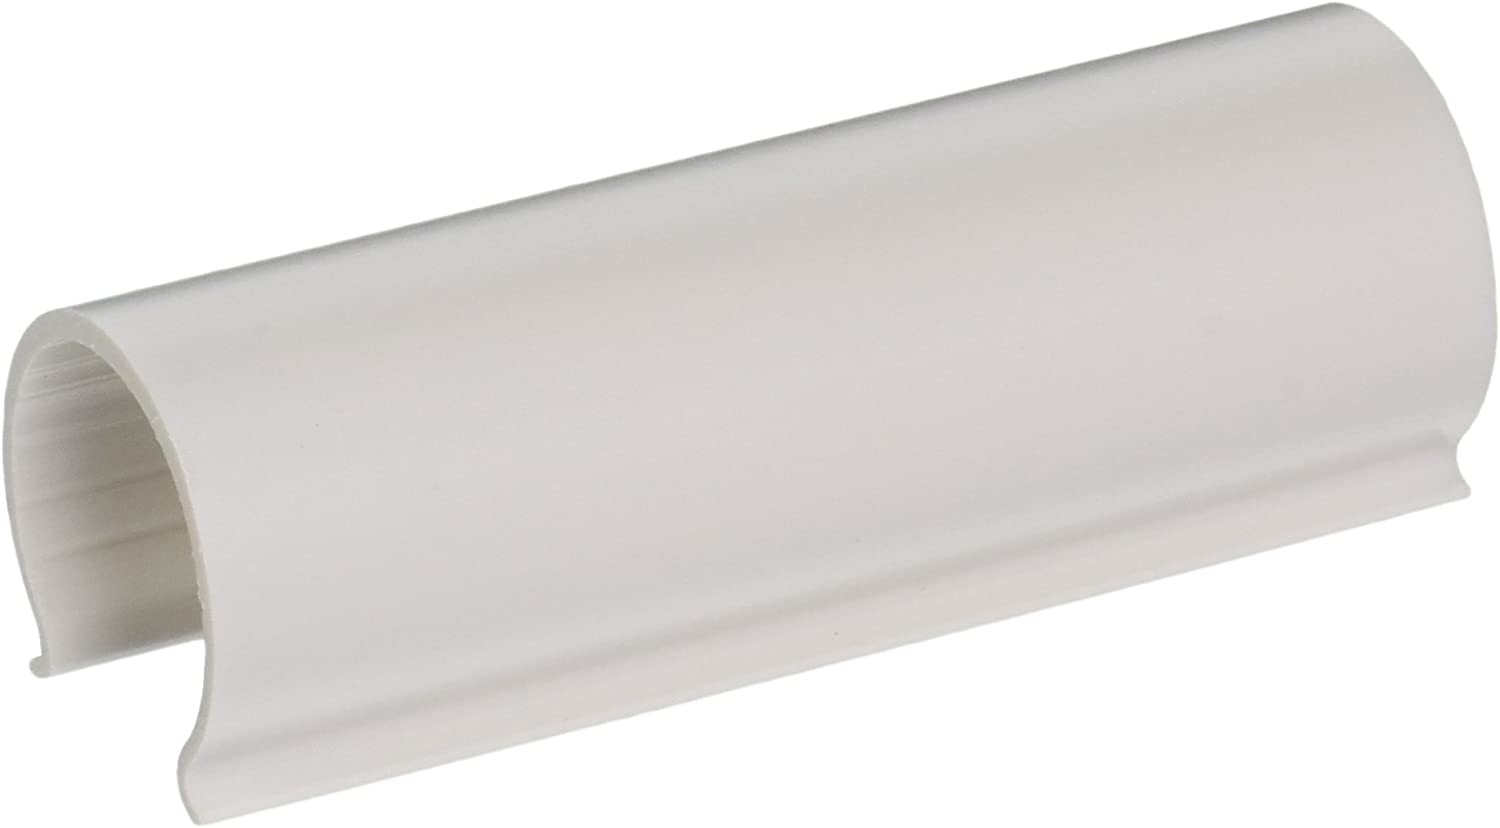 EZ White Snap Clamp 1-1/4 Inch X 4 Inches Wide for 1-1/4 Inch PVC Pipe 10 Per Bag